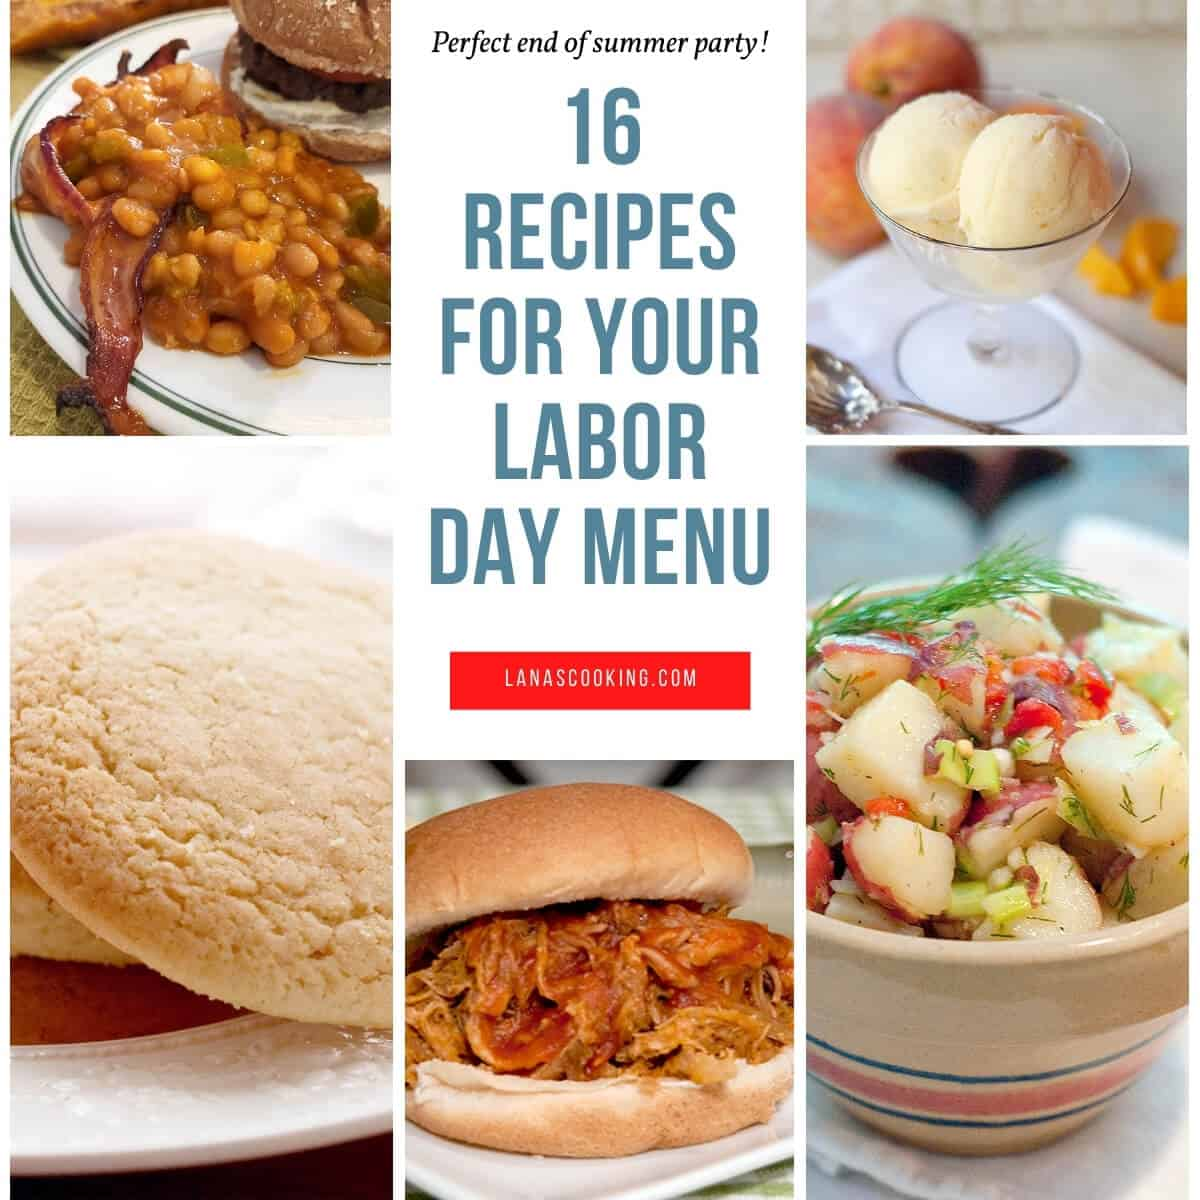 16 Recipes for Your Labor Day Menu